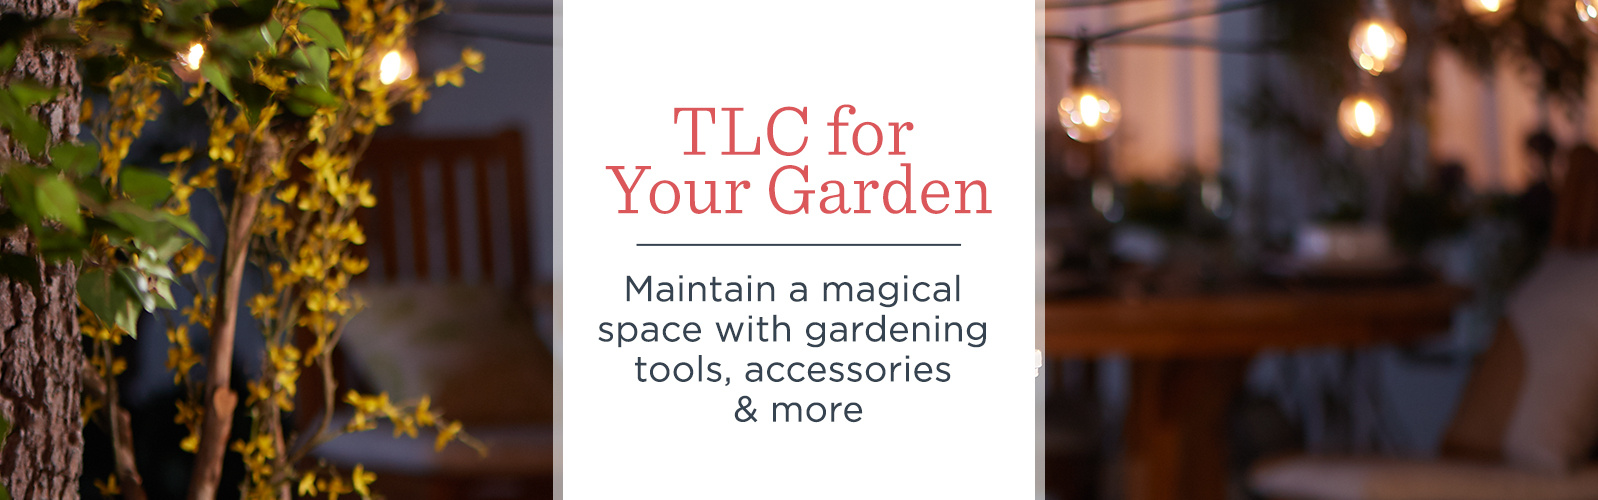 TLC for Your Garden. Maintain a magical space with gardening tools, accessories & more